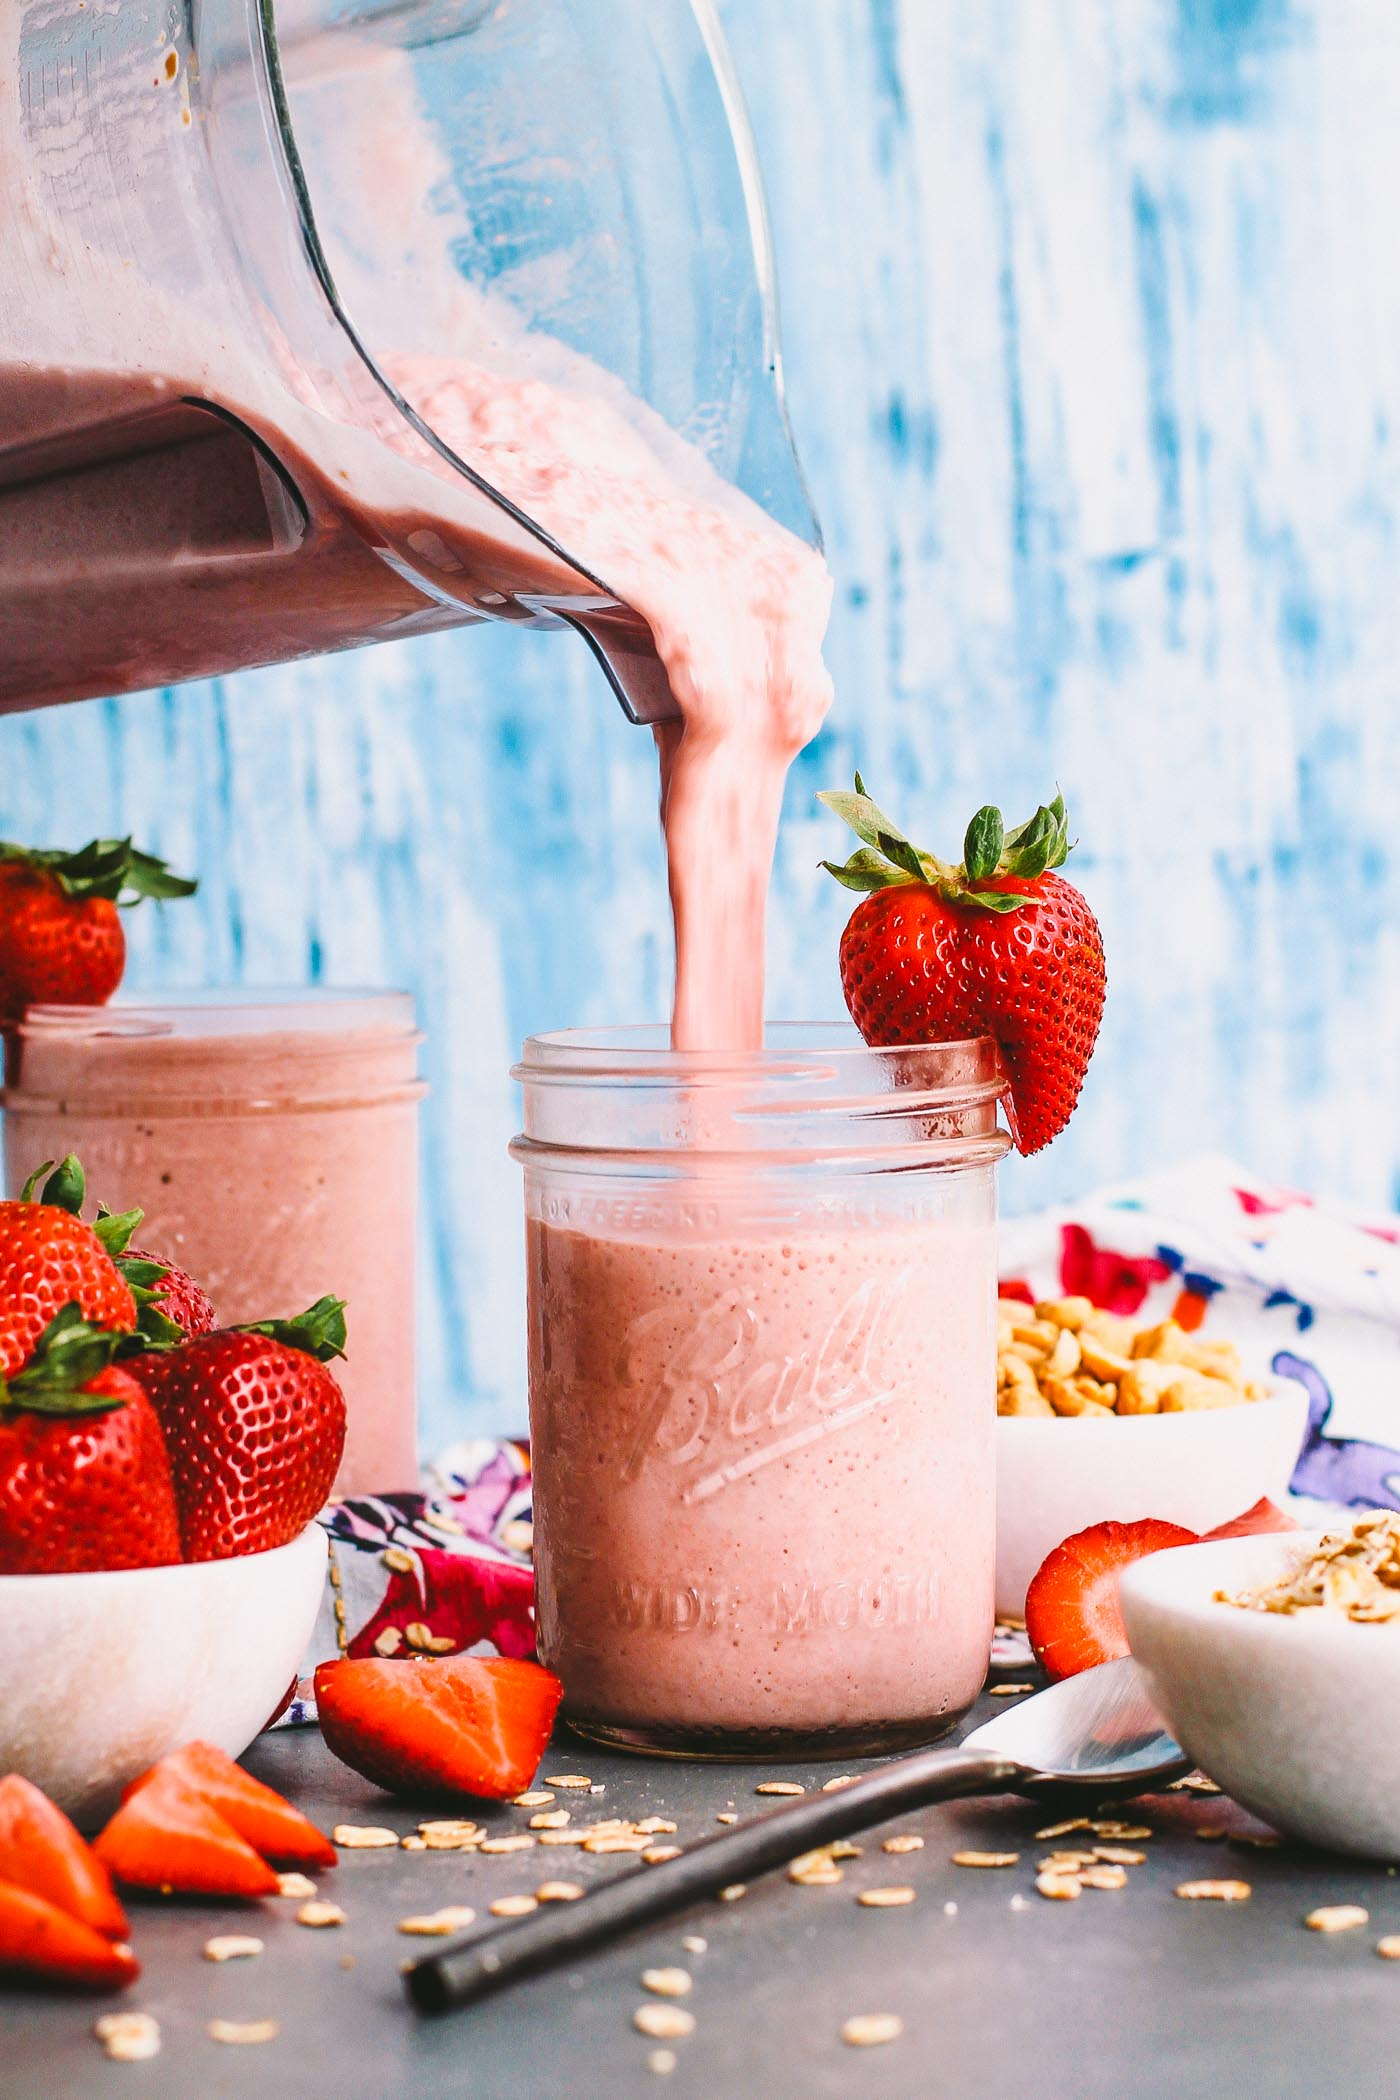 a creamy, delicious smoothie recipe for an easy, healthy breakfast for any busy weekday mornings! these peanut butter & jelly strawberry smoothies are loaded with strawberries, peanut butter, & oats to keep you full until lunchtime. | smoothie, healthy smoothie, protein shake, healthy breakfast, smoothie pack, gluten free, vegan, iifym |